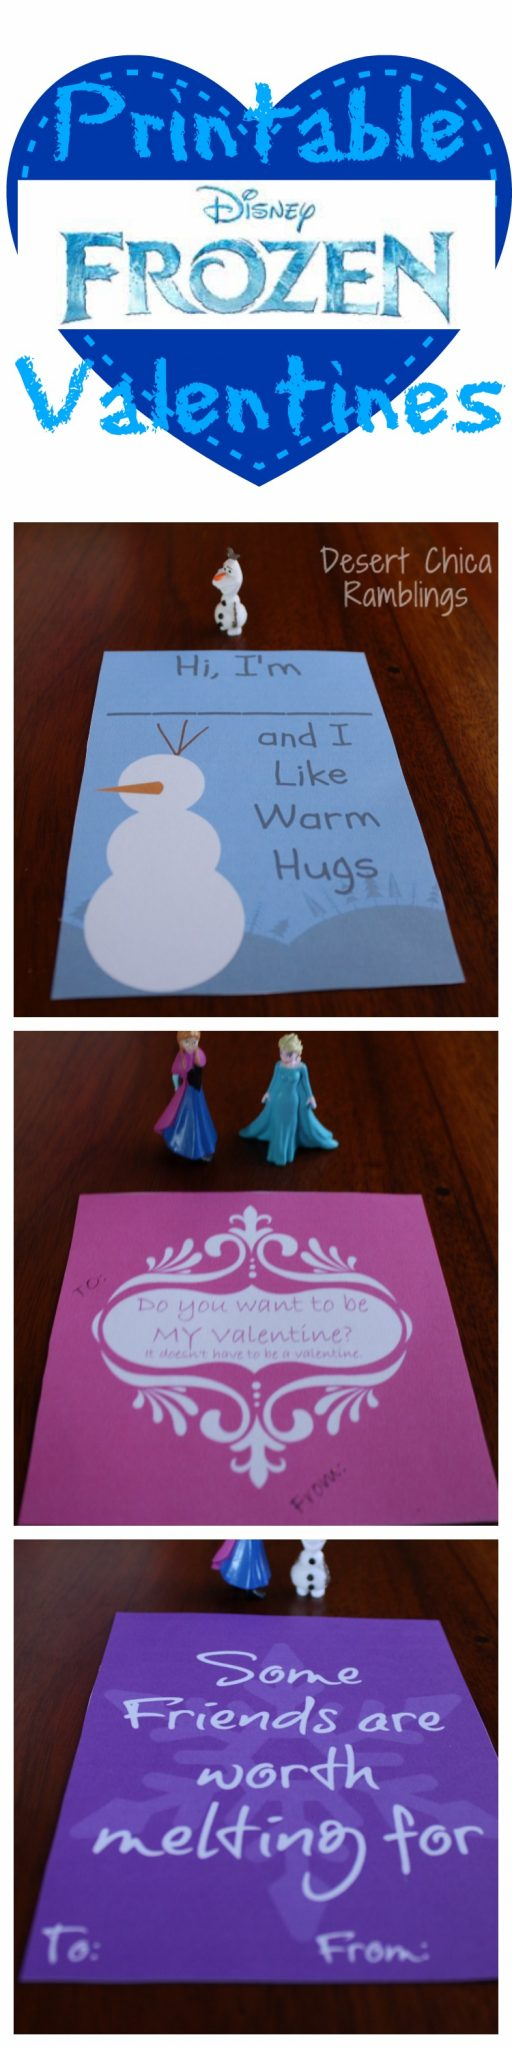 Disney Frozen Printable Valentines